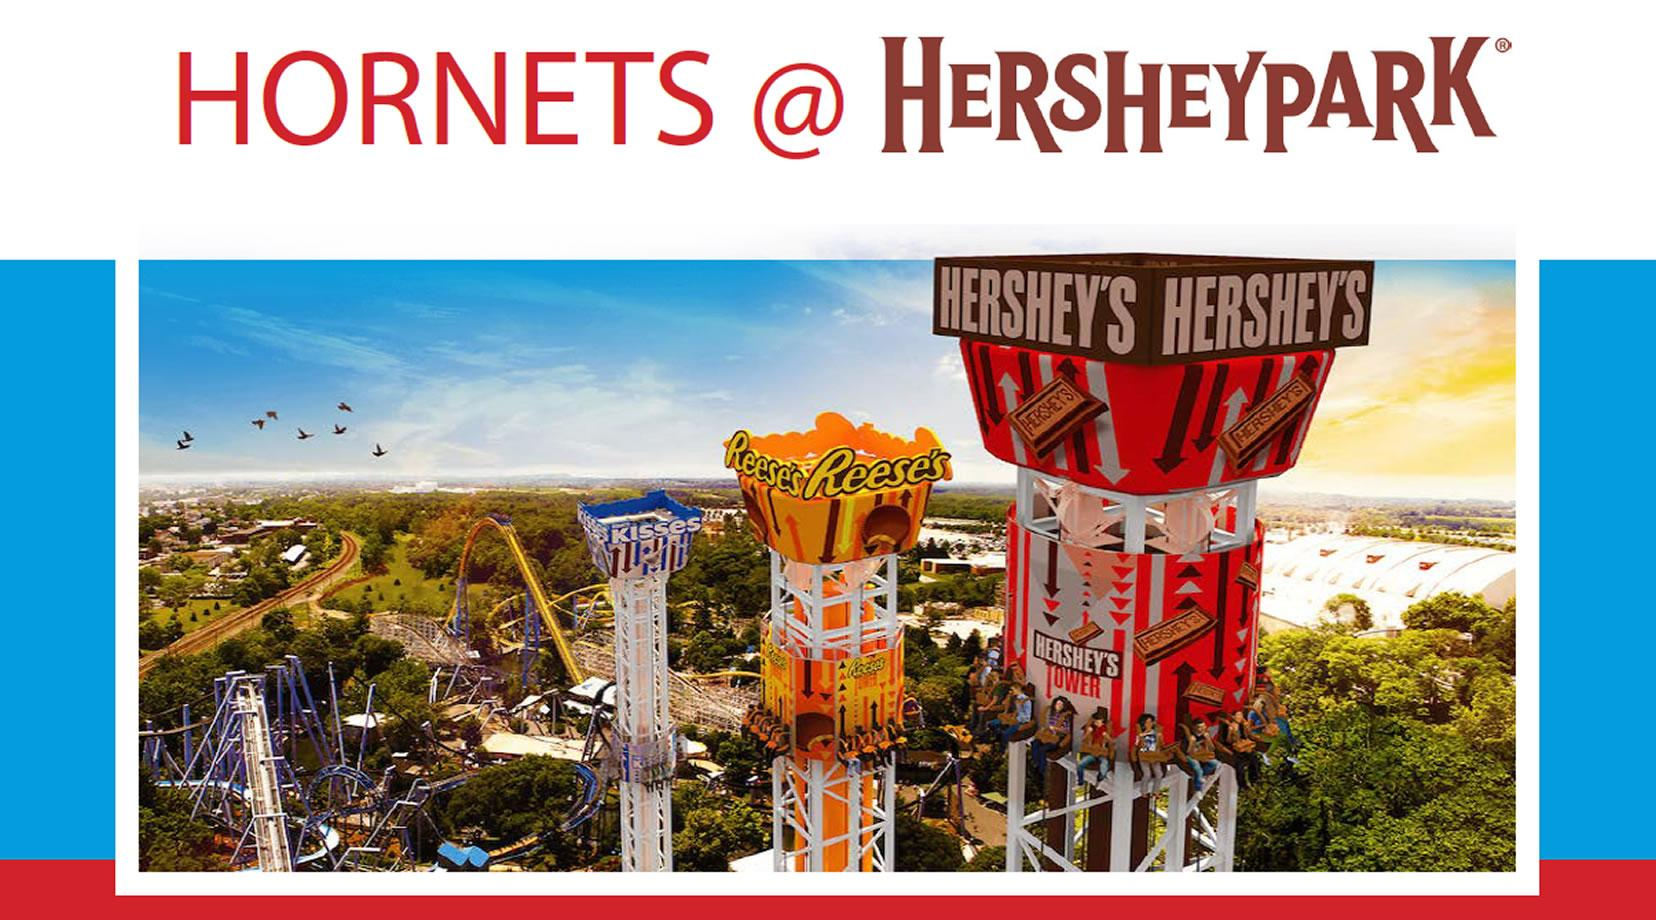 Join us for Hornets @ Hersheypark